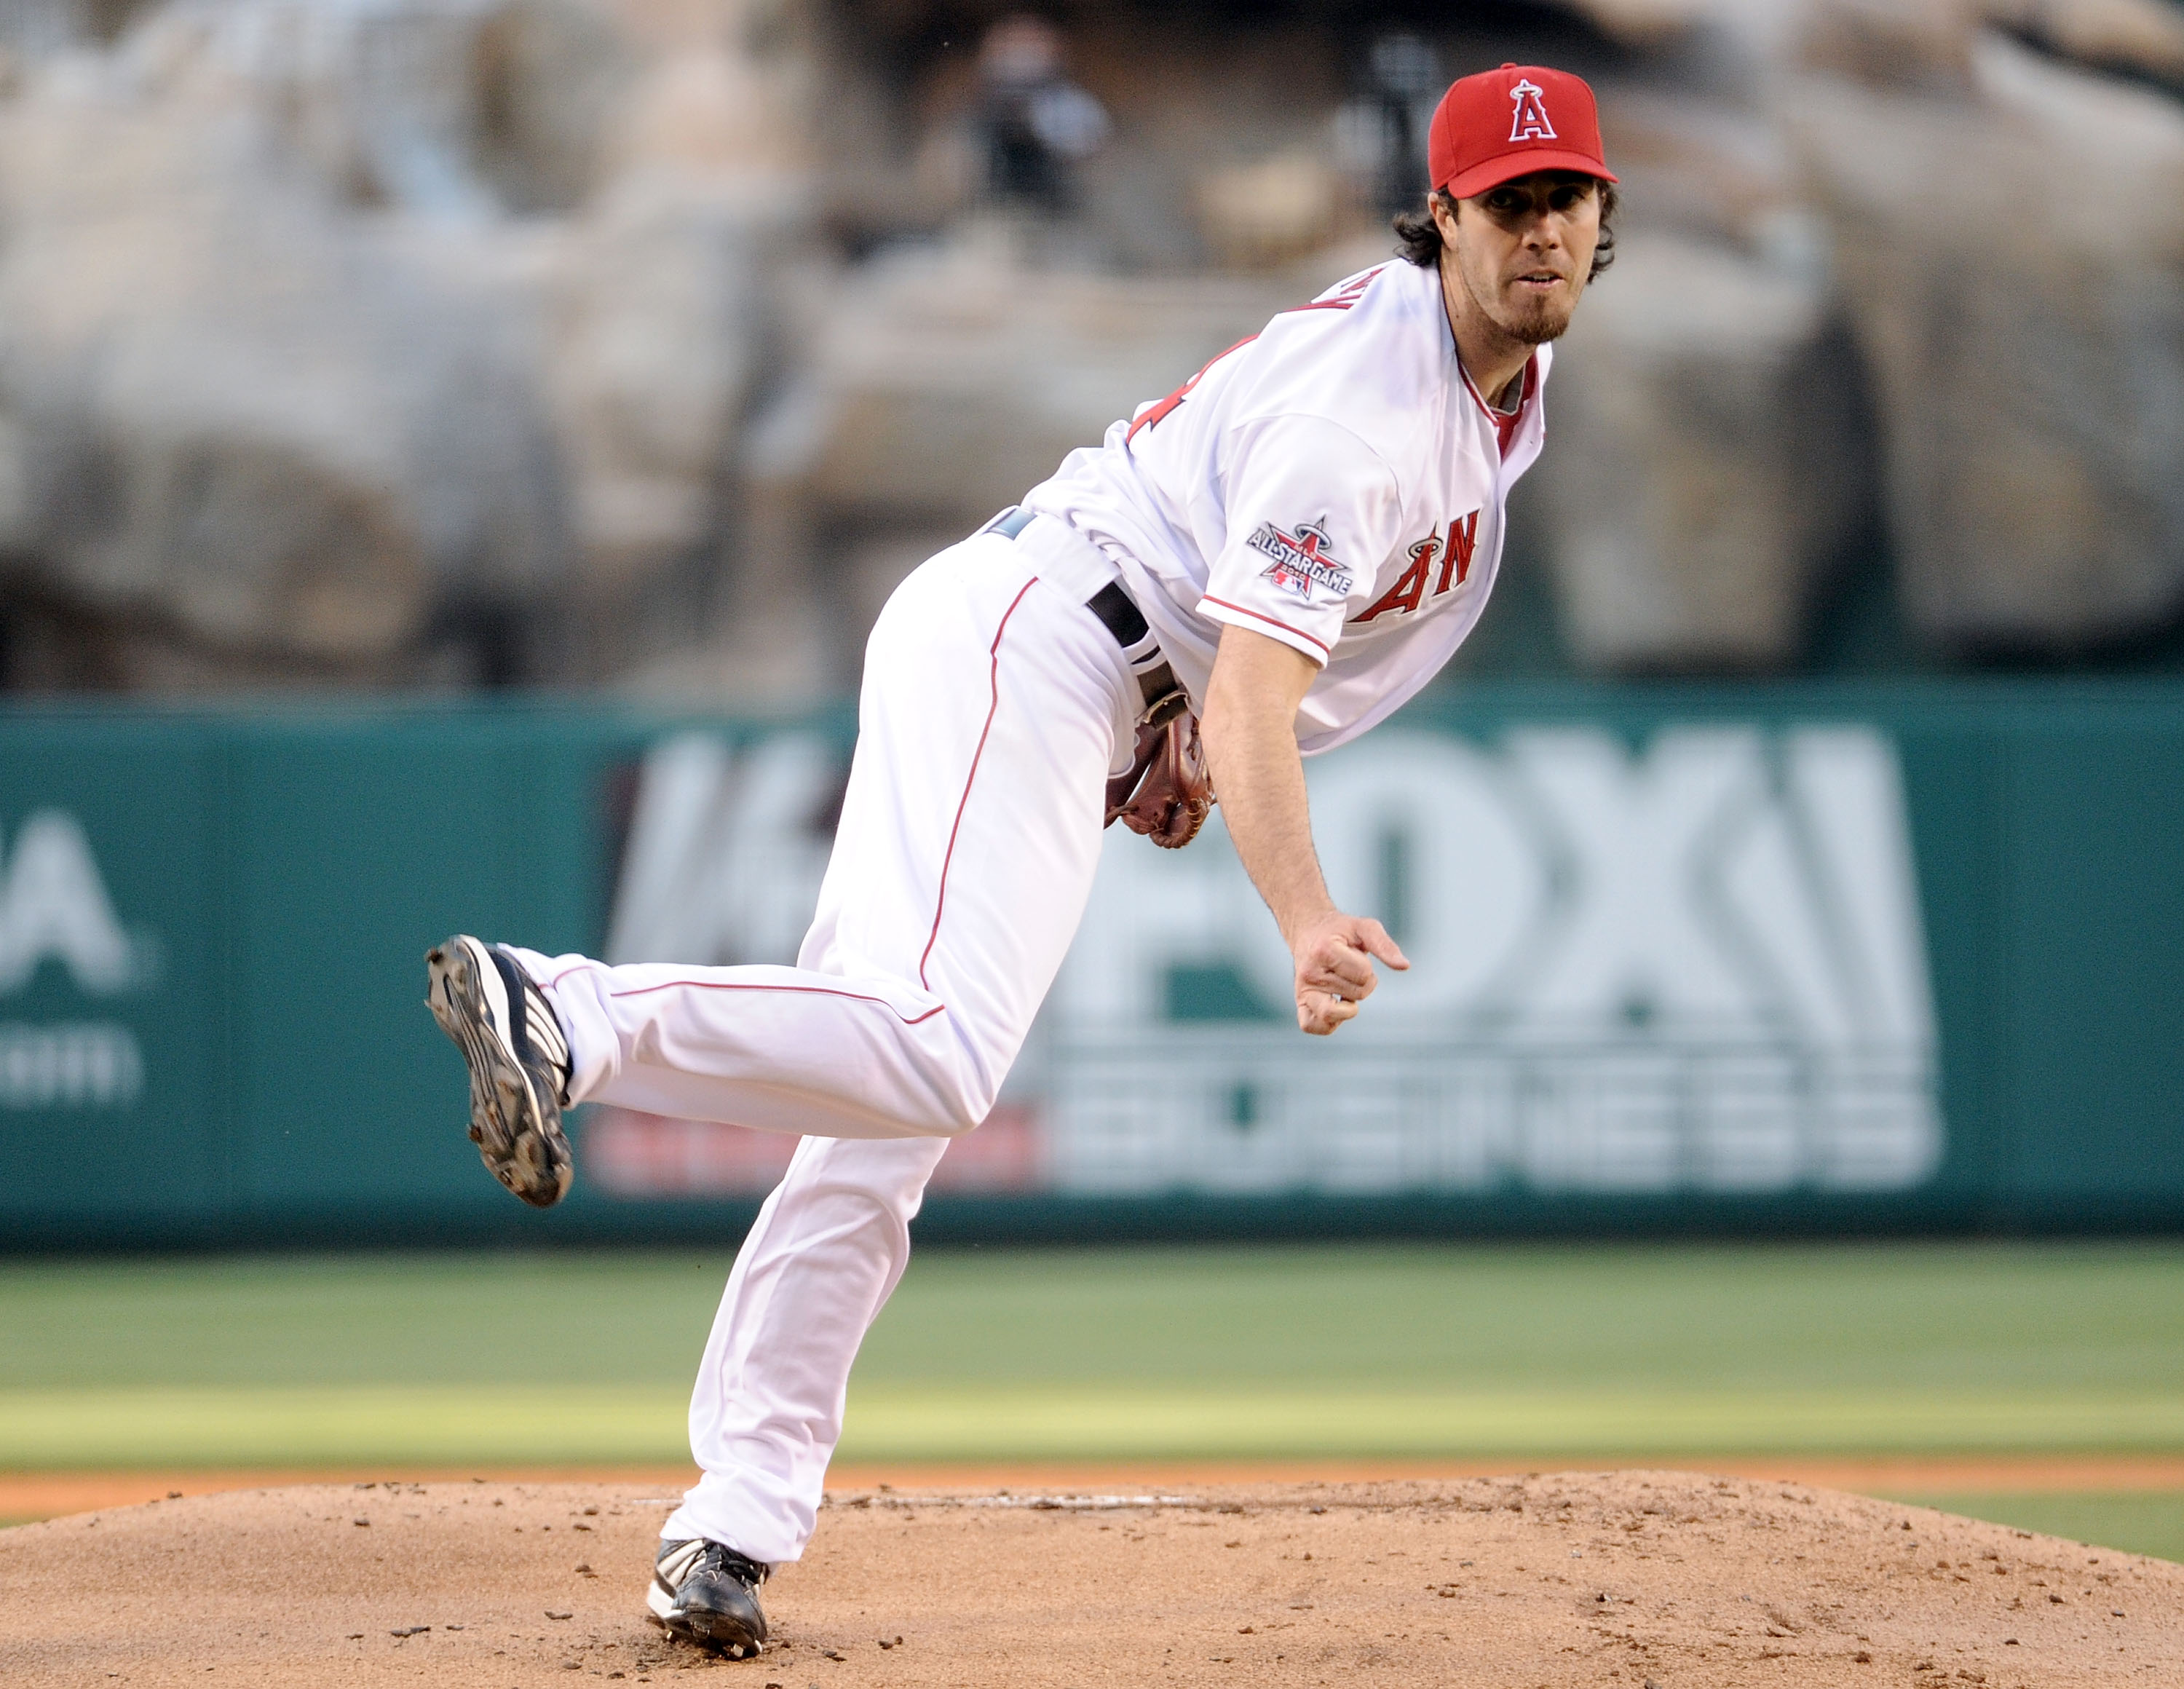 ANAHEIM, CA - JULY 26:  Dan Haren #24 of the  Los Angeles Angels pitches against the Boston Red Sox during the first inning at Angel Stadium on July 26, 2010 in Anaheim, California.  (Photo by Harry How/Getty Images)